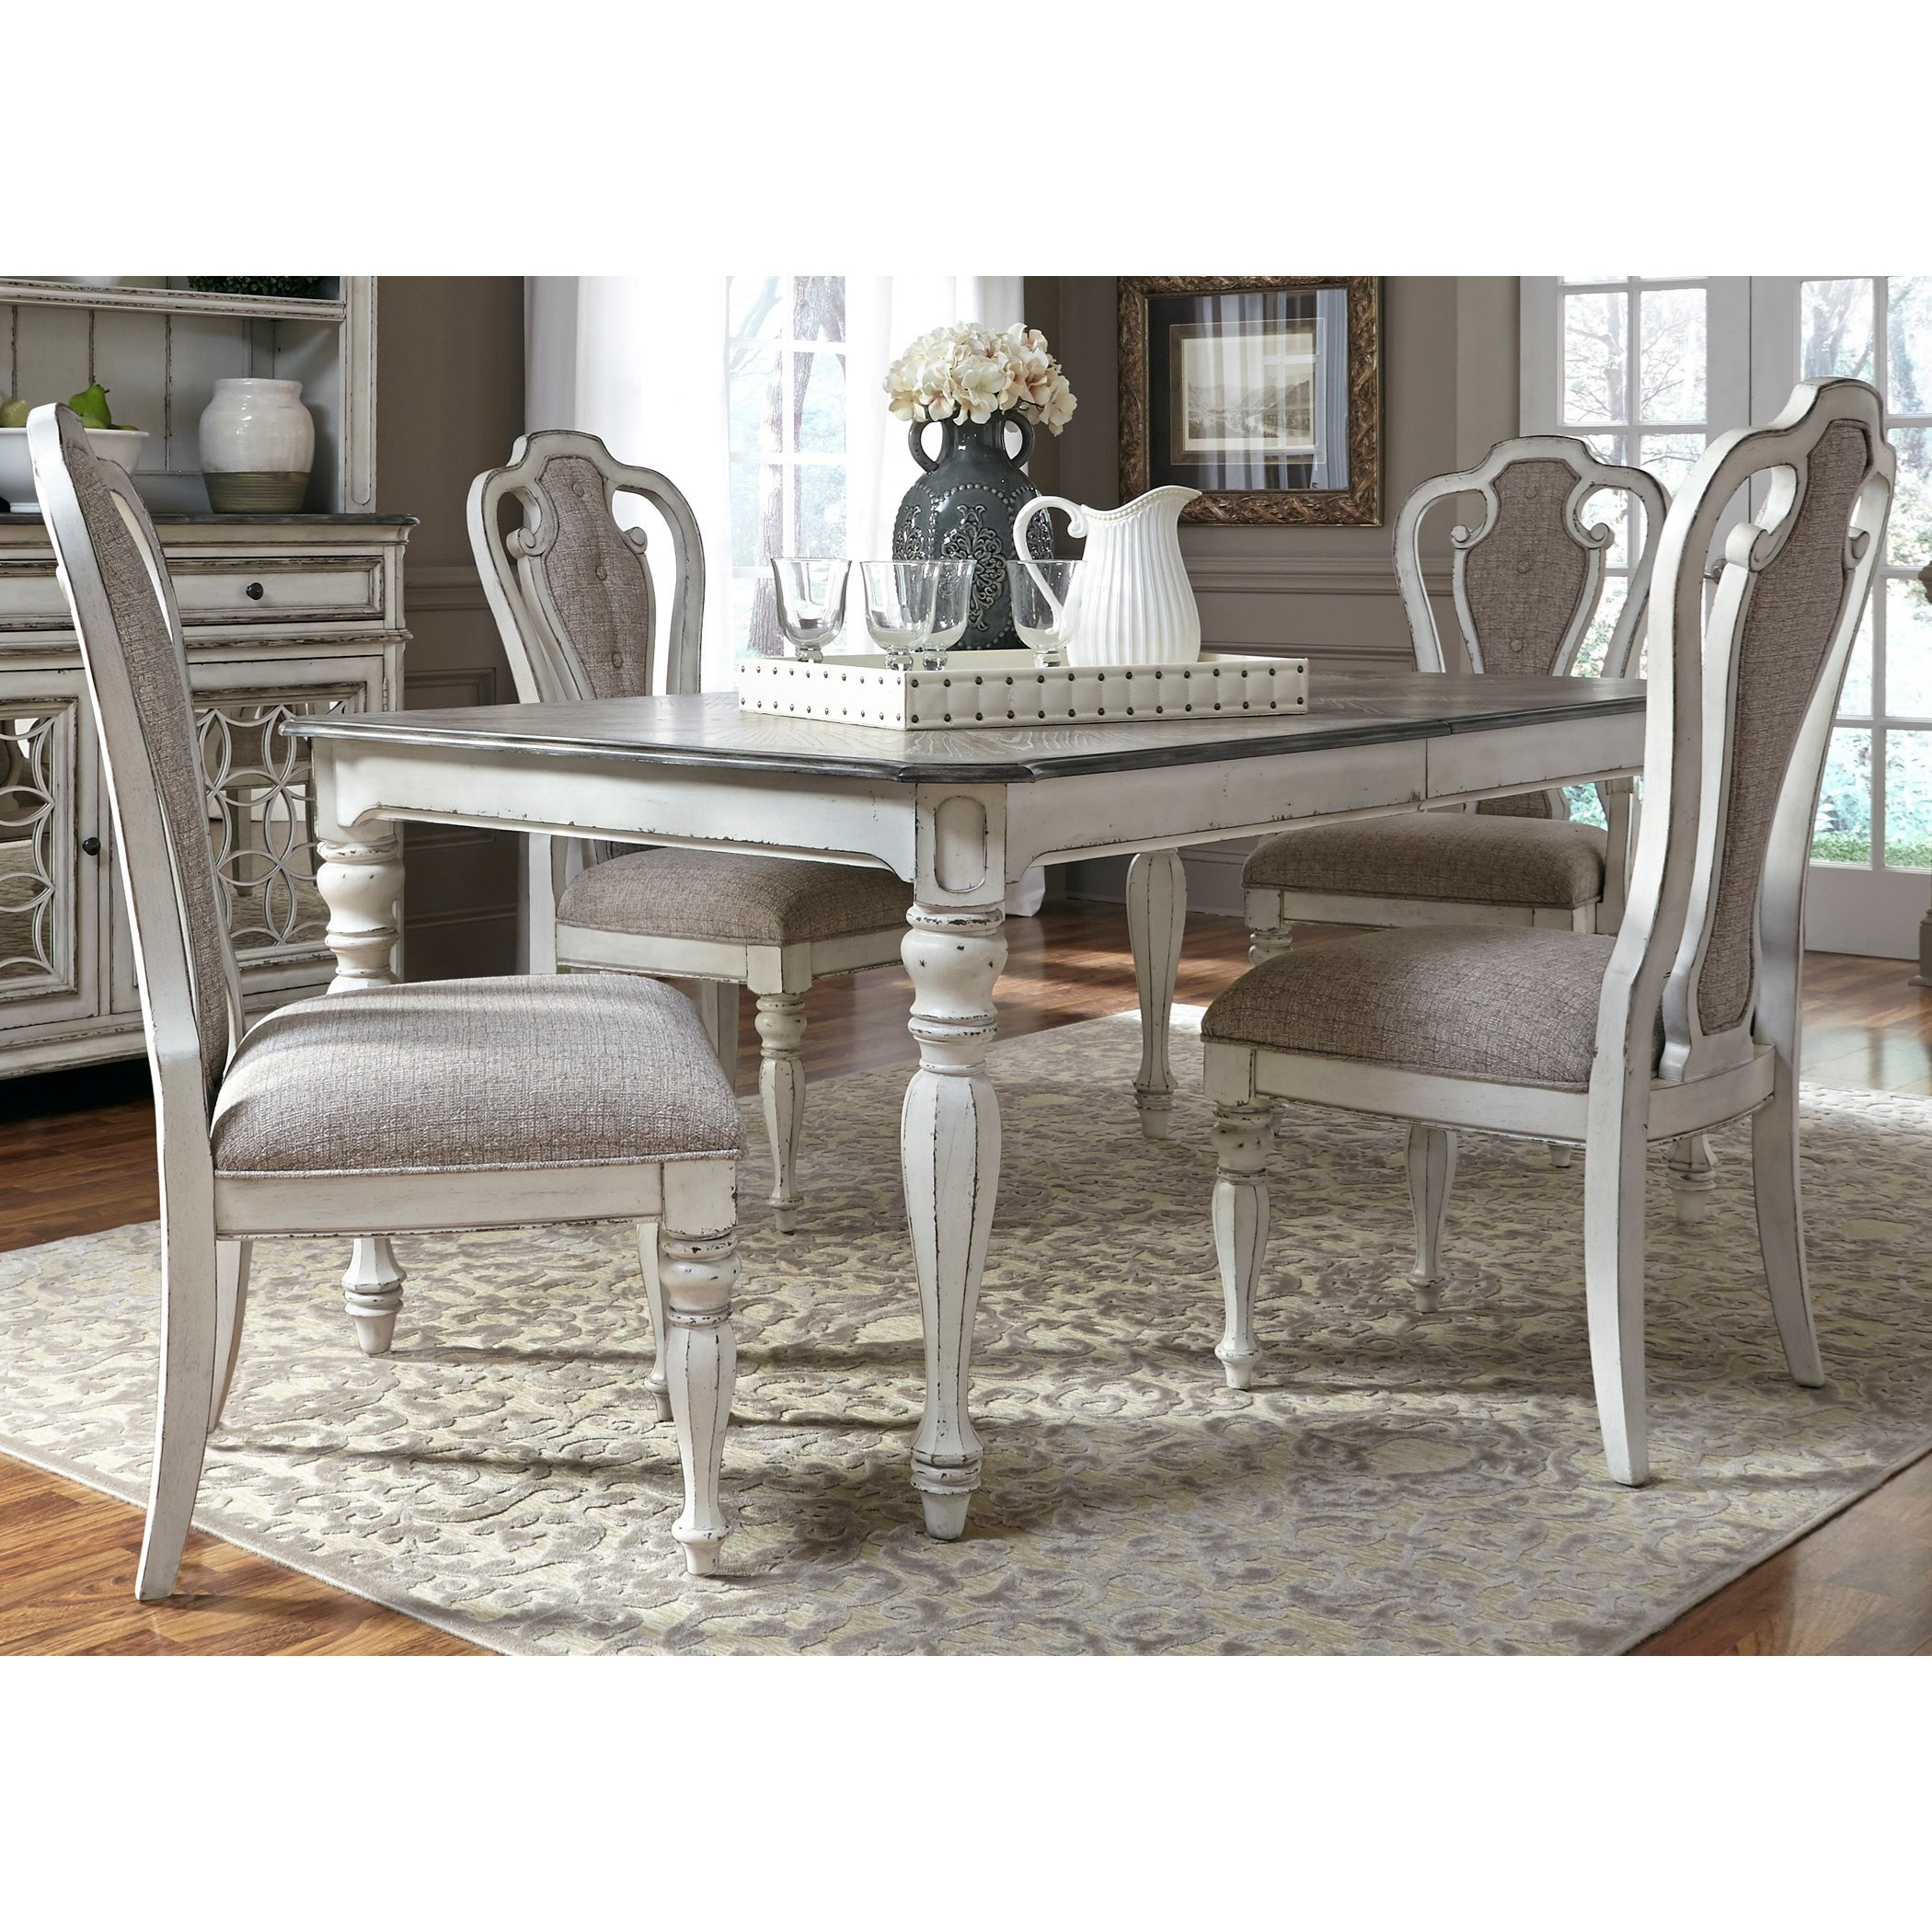 Liberty Furniture Magnolia Manor Dining 5 Piece